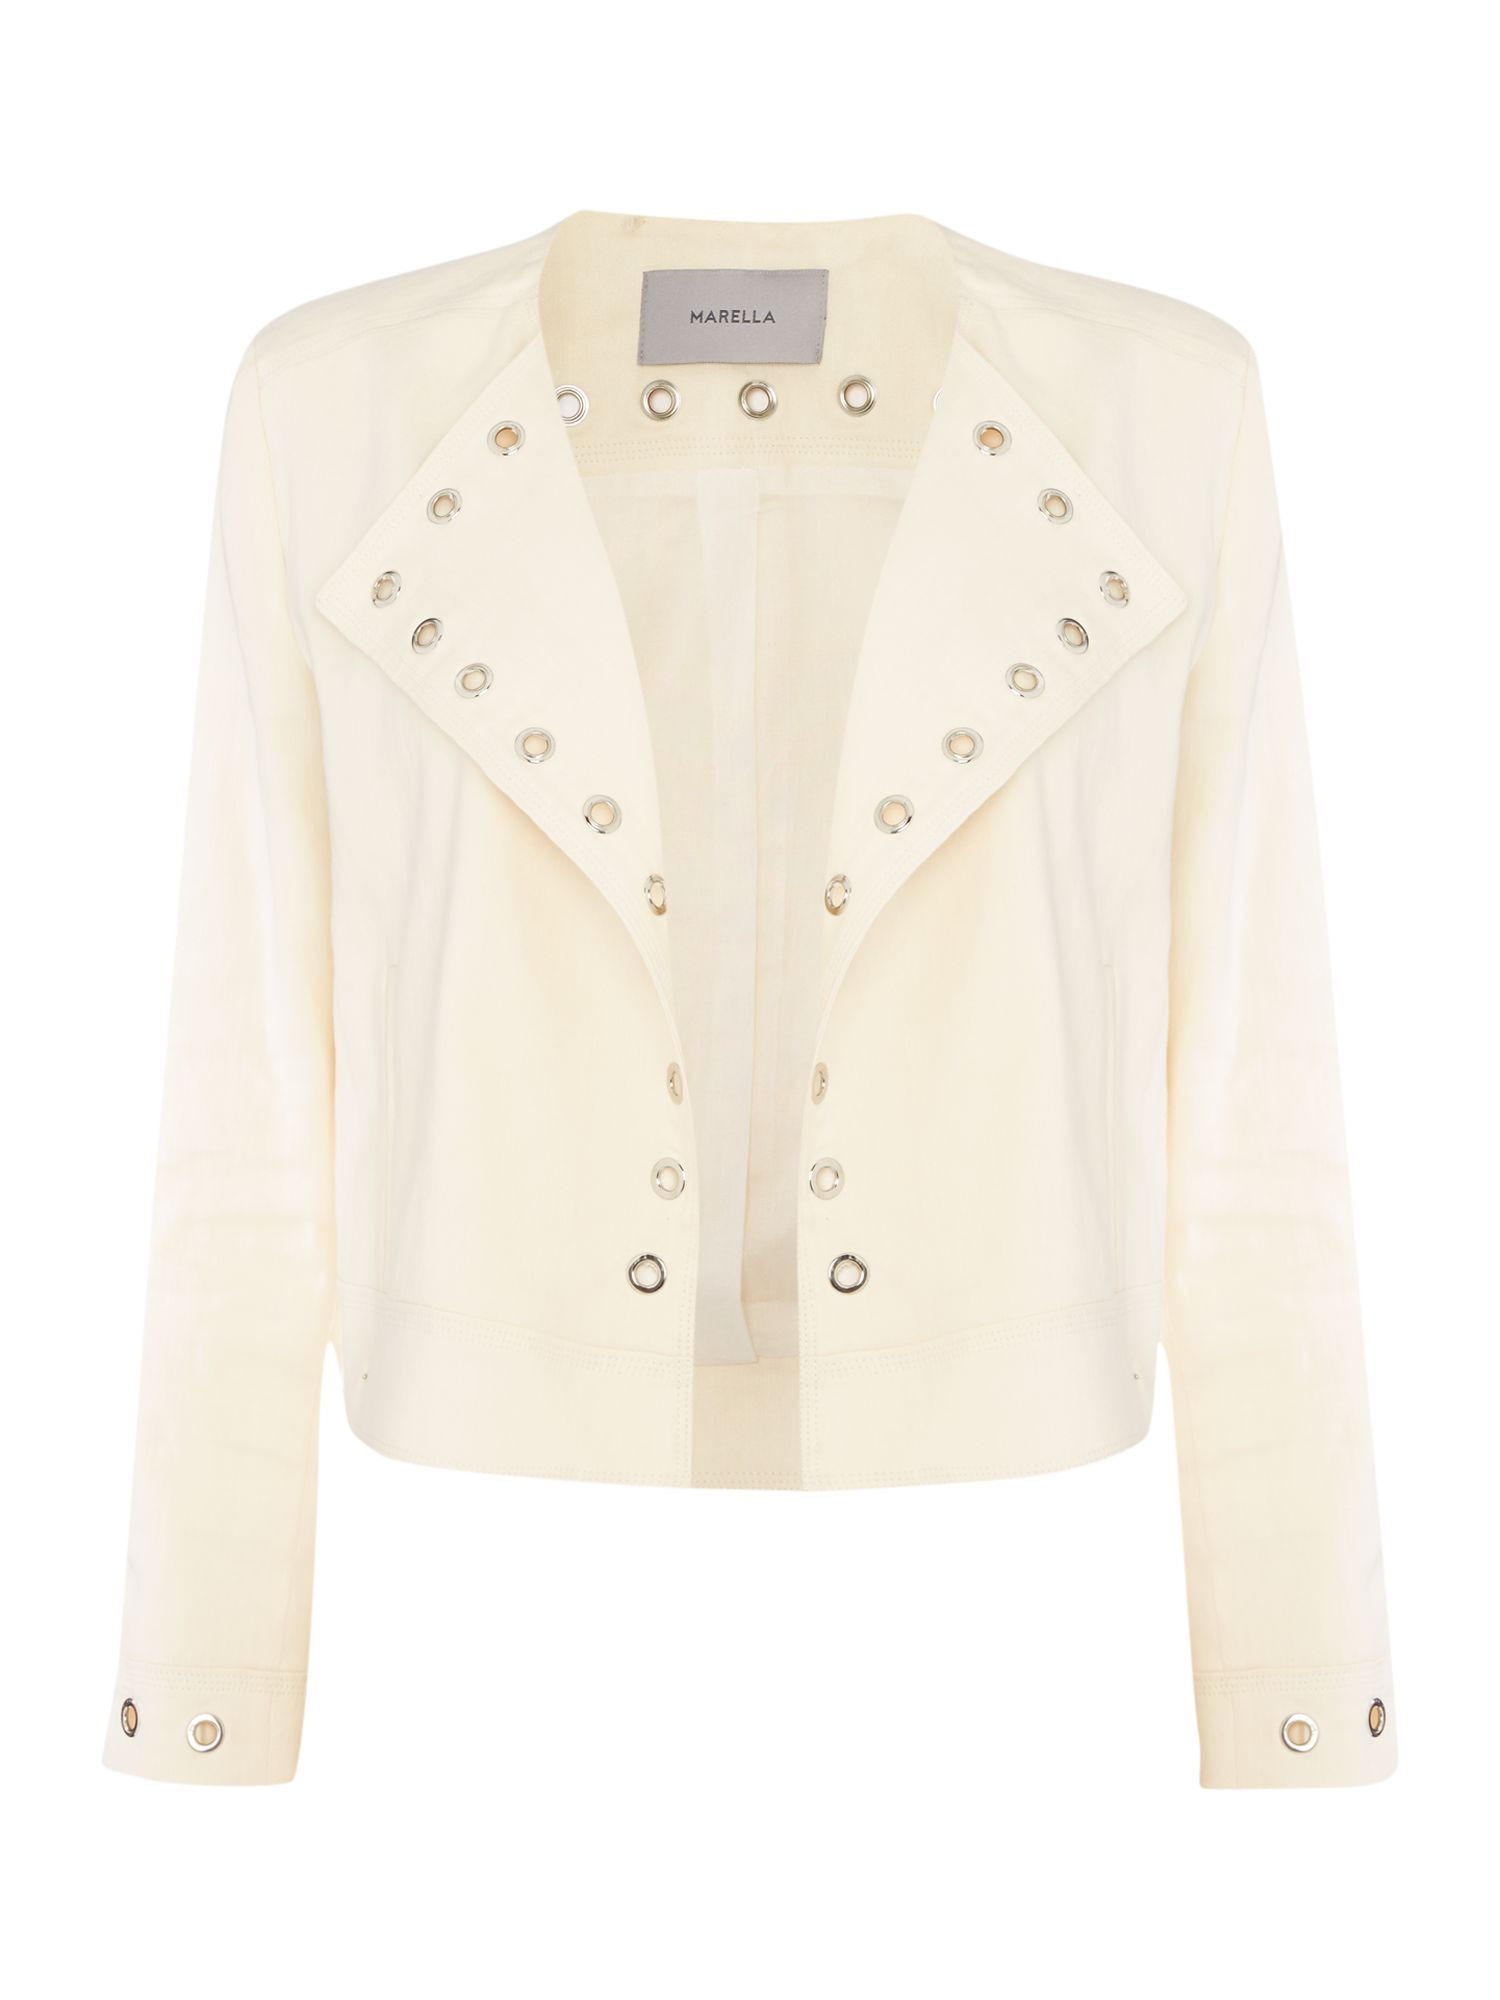 Marella LOLLY longsleeve linen mix jacket with eyelets, Cream